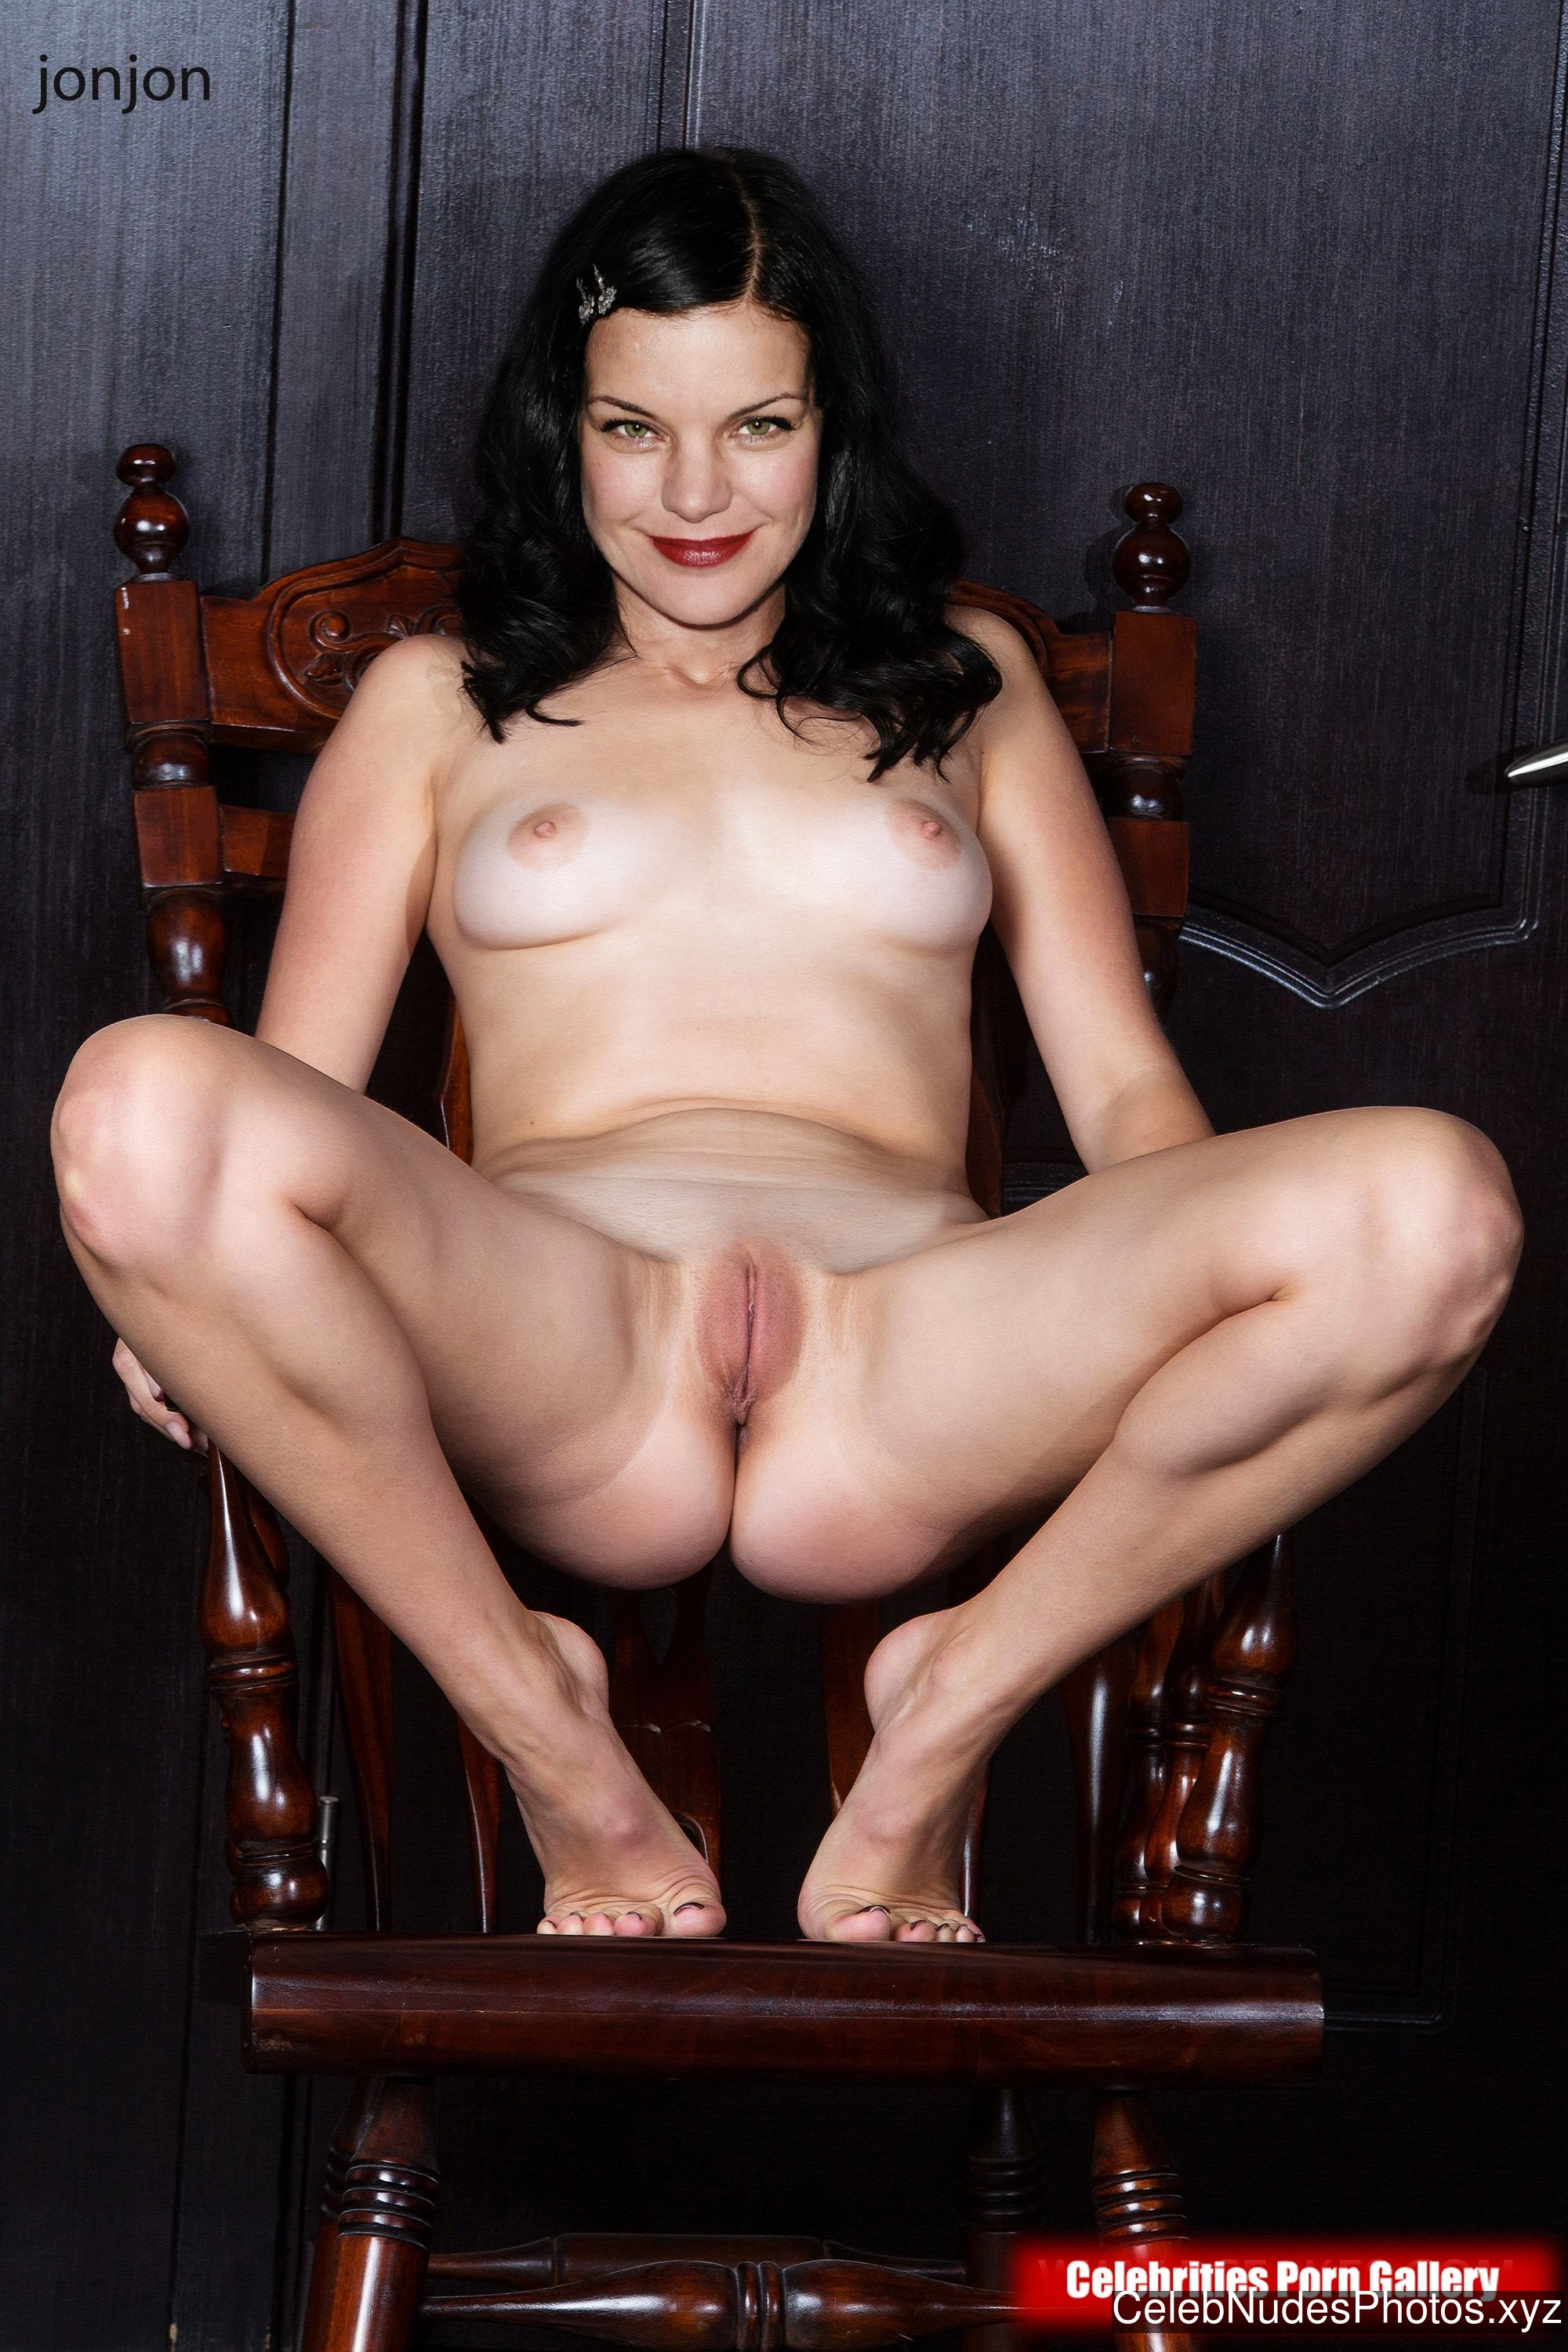 Apologise, but, ncis pauley perrette porn something